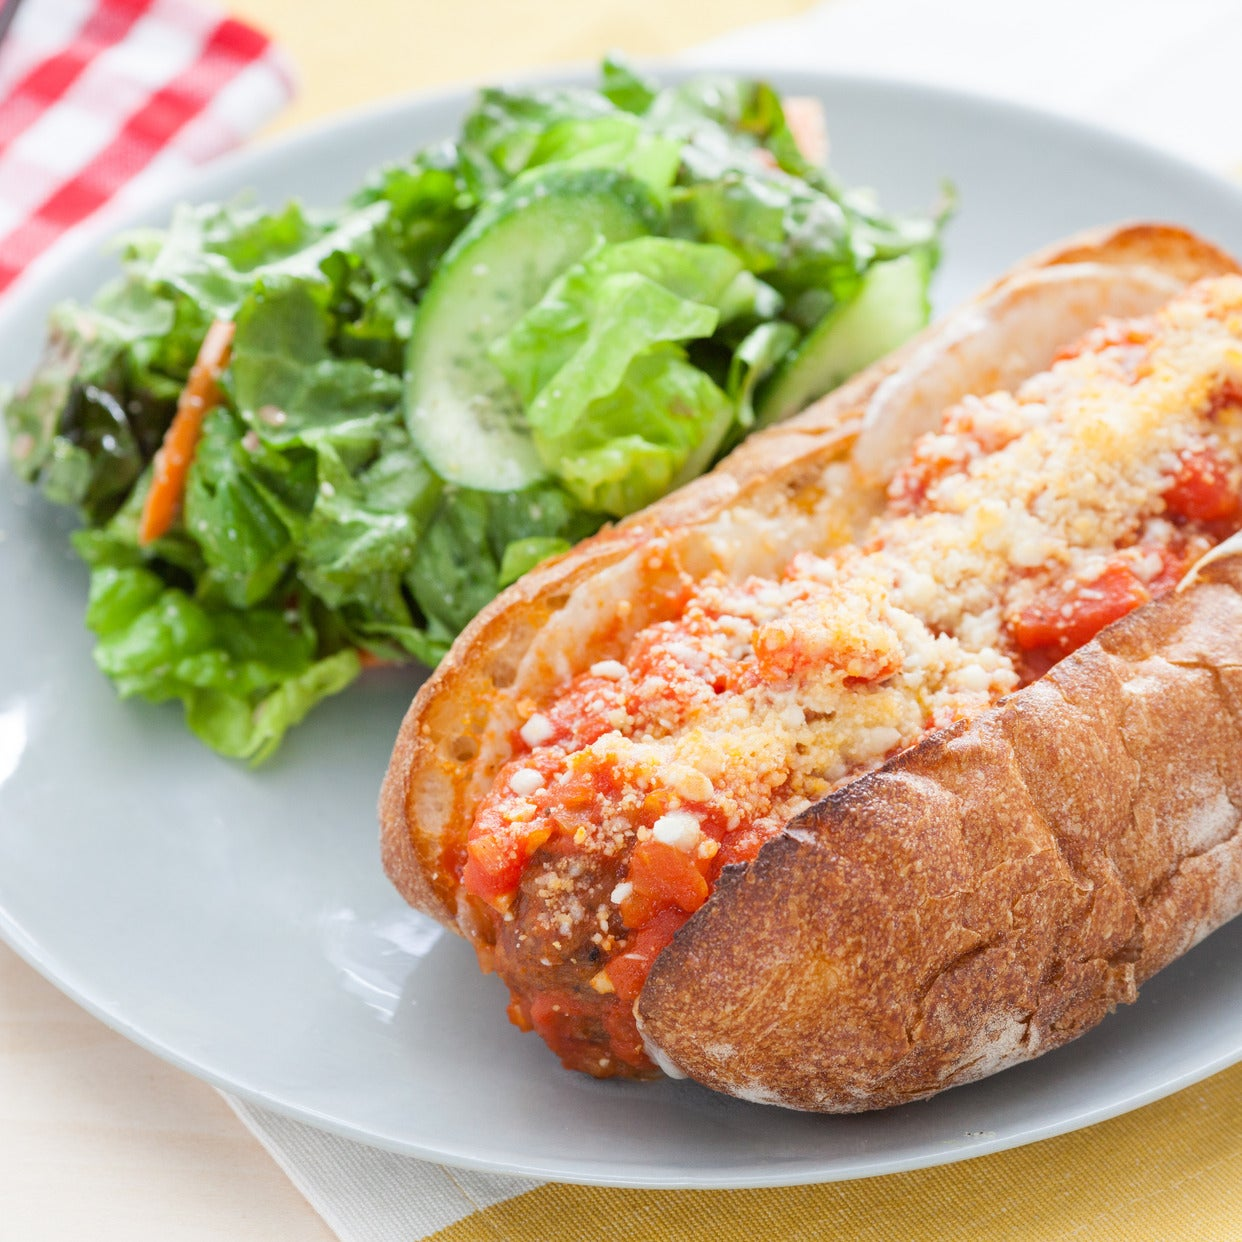 Meatball Subs with Red Leaf Salad